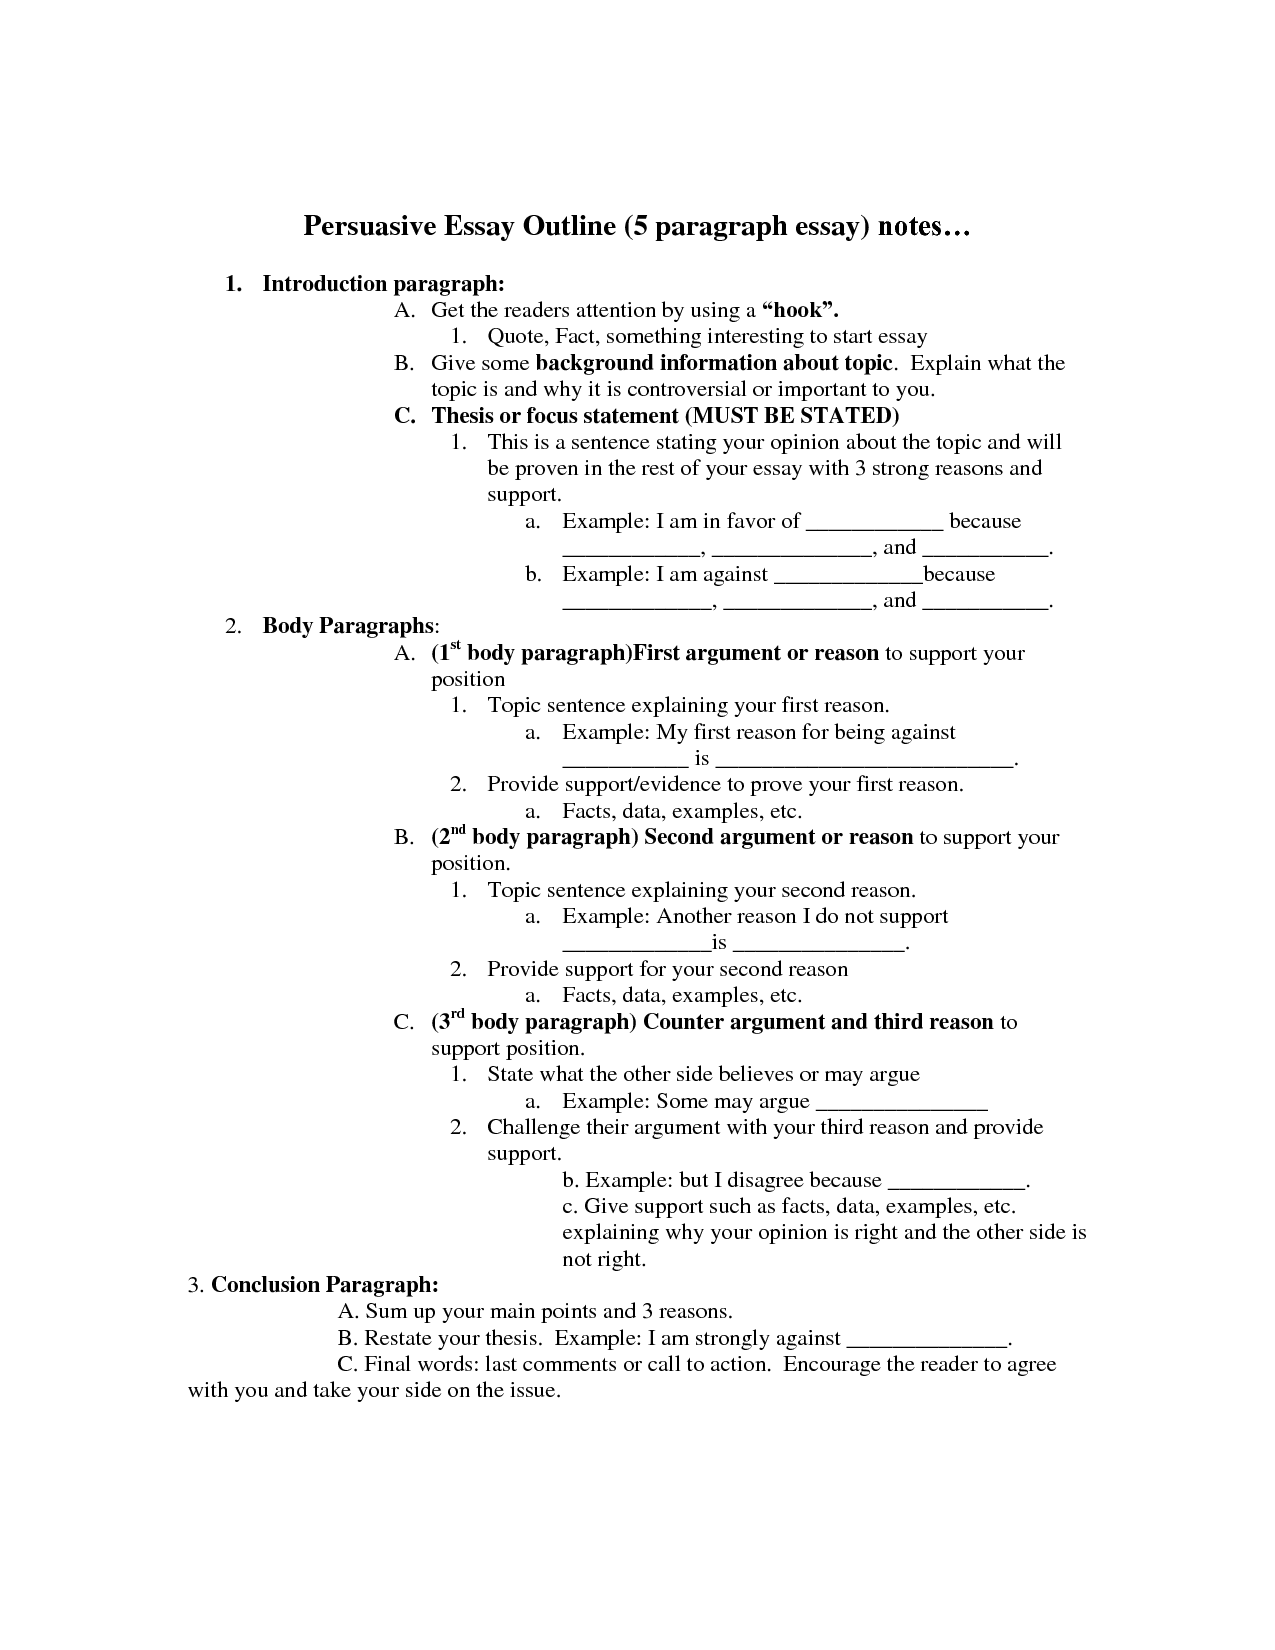 Argumentative essay outline template